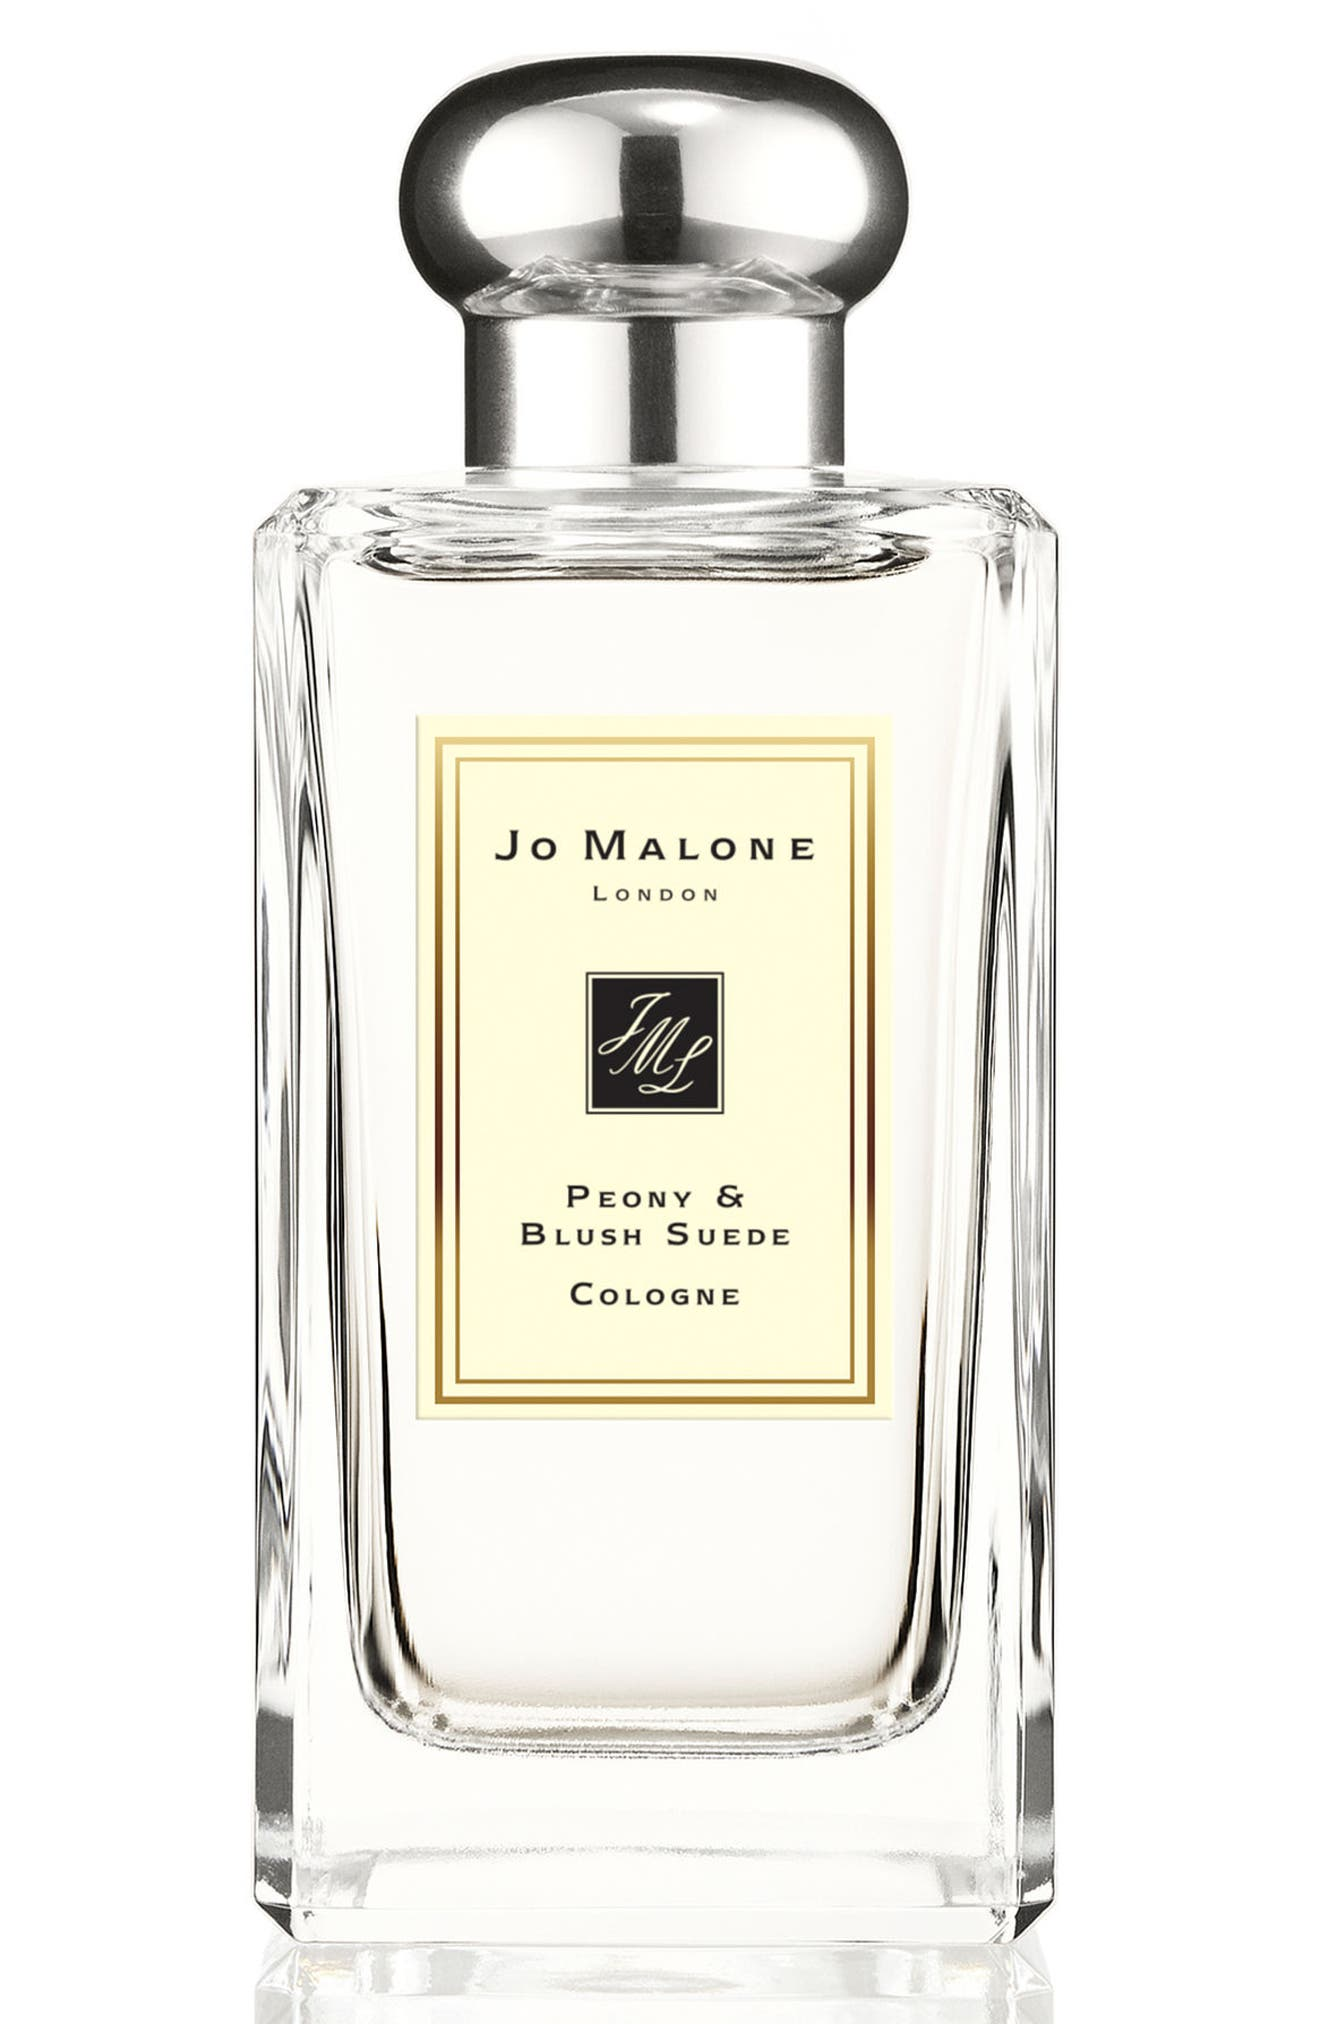 Jo Malone London™ Peony & Blush Suede Cologne (3.4 oz.)